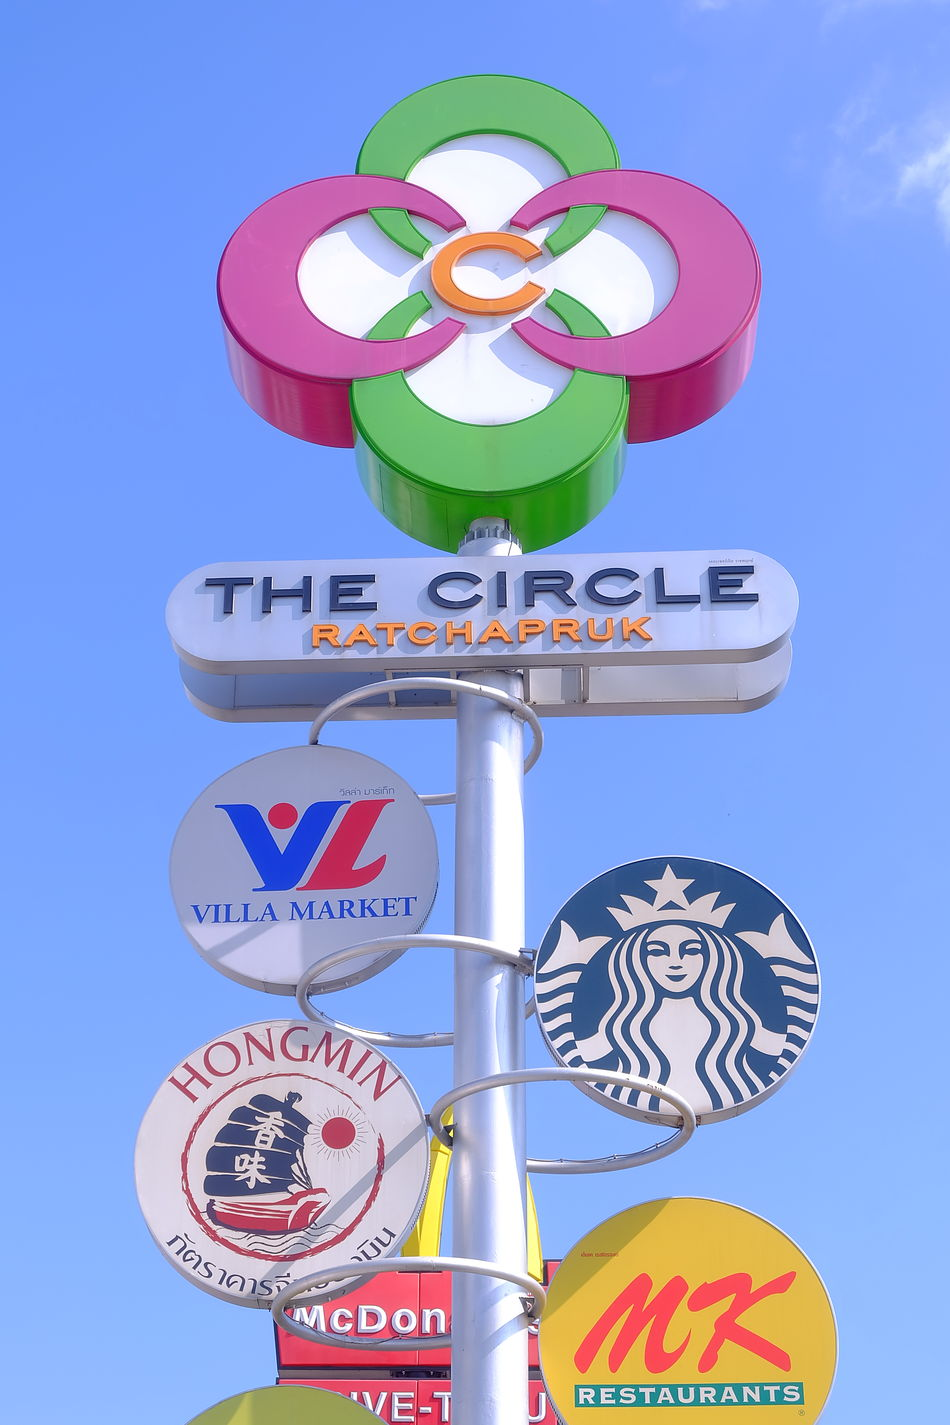 billboard of The circle bangkok Thailand oDay Sky Outdoors multicolorBuilding Exterior Blue Sky Multicolor Architecture City Colorful Community Mall Shopping Mall Communitymall The Circle Bangkok Thailand Billboard Logo